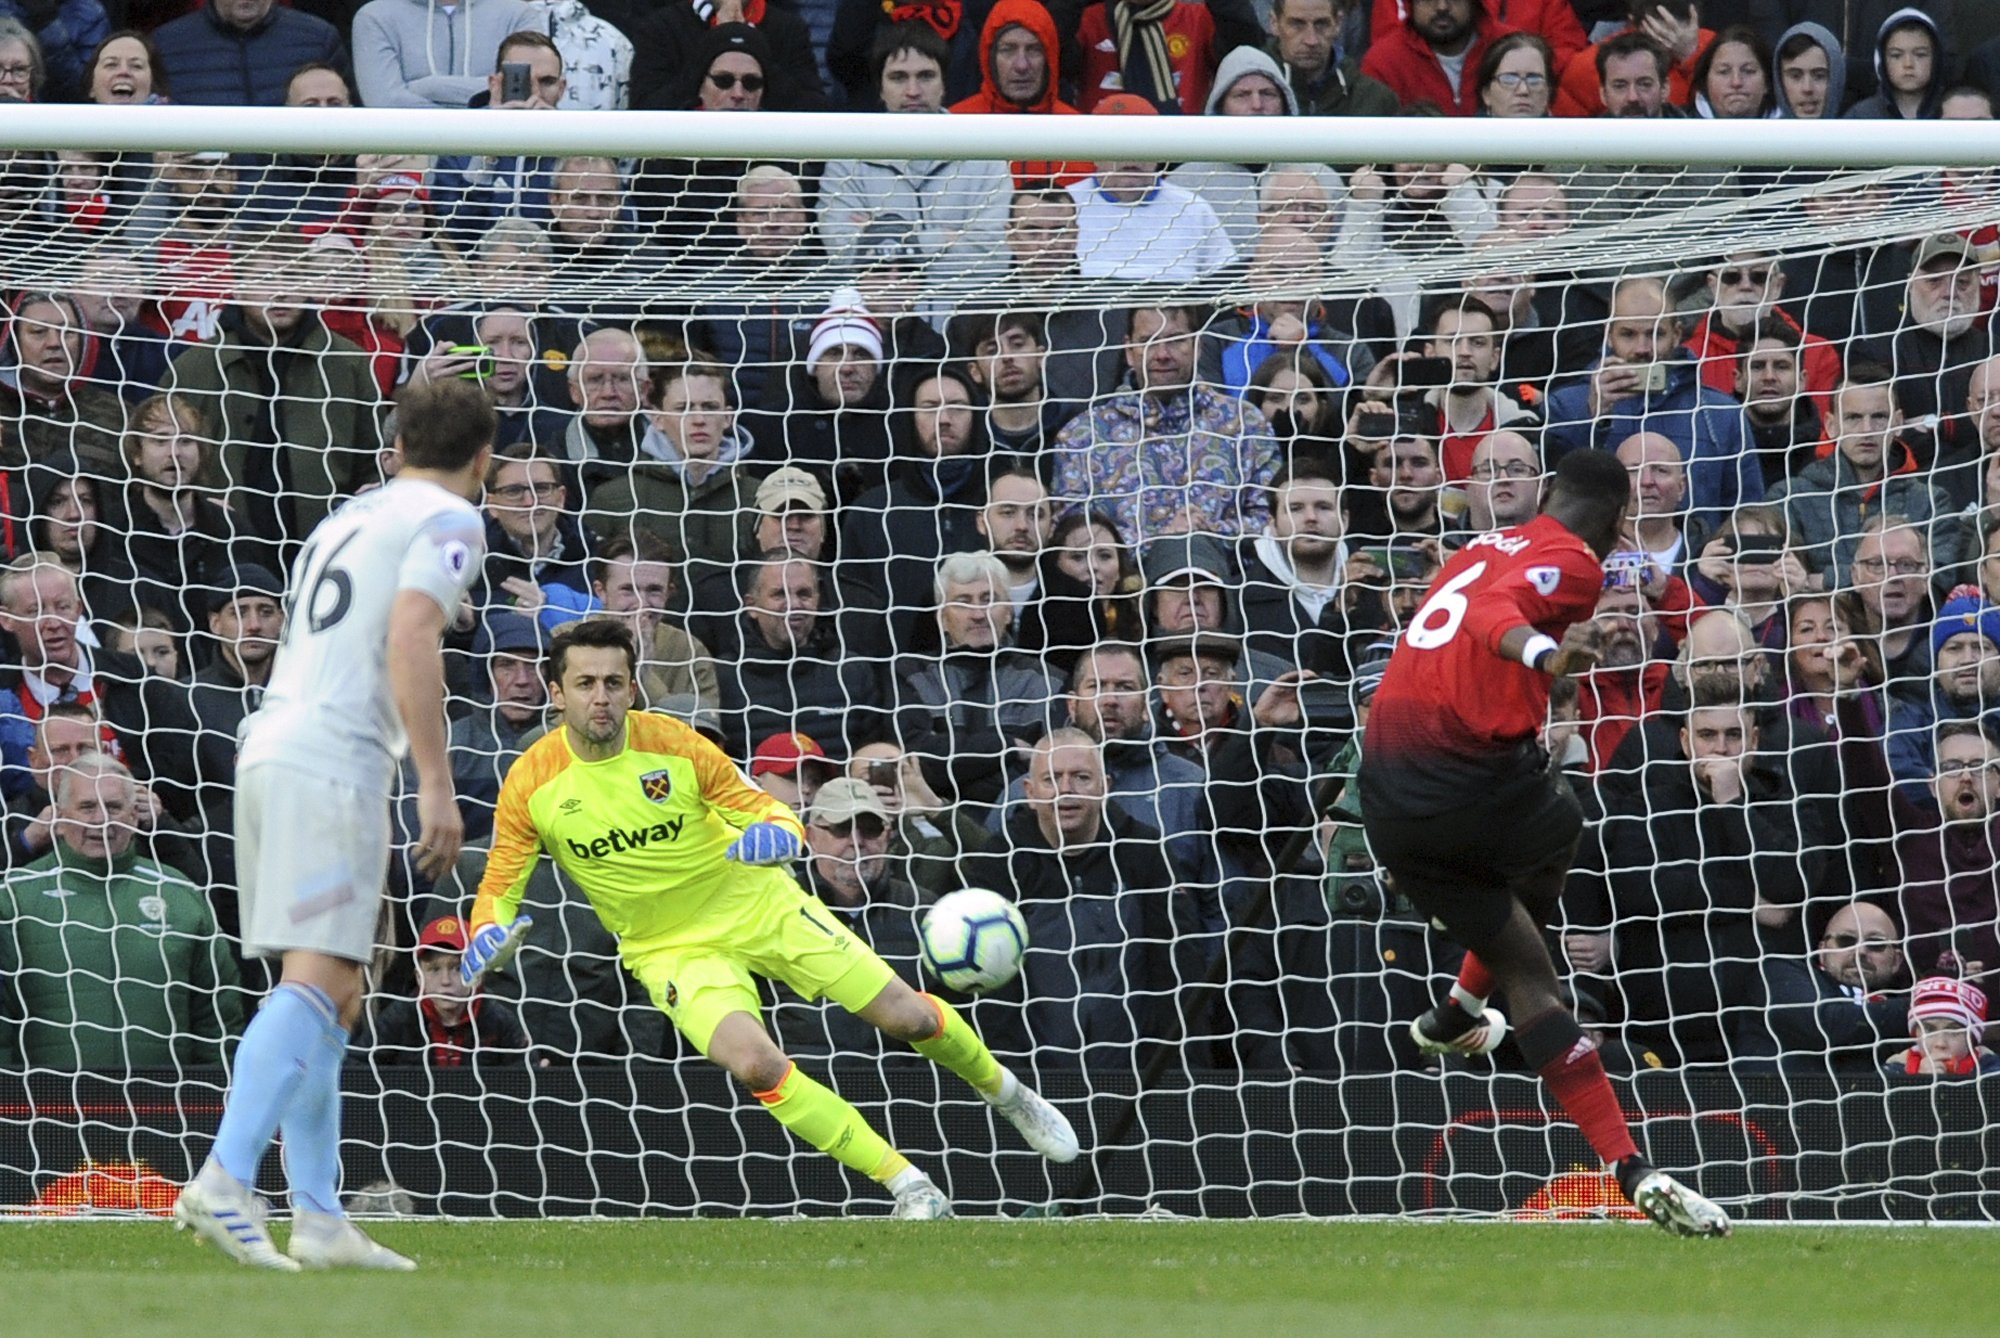 Pogba Penalties Give Man United 2 1 Win Over West Ham In Epl